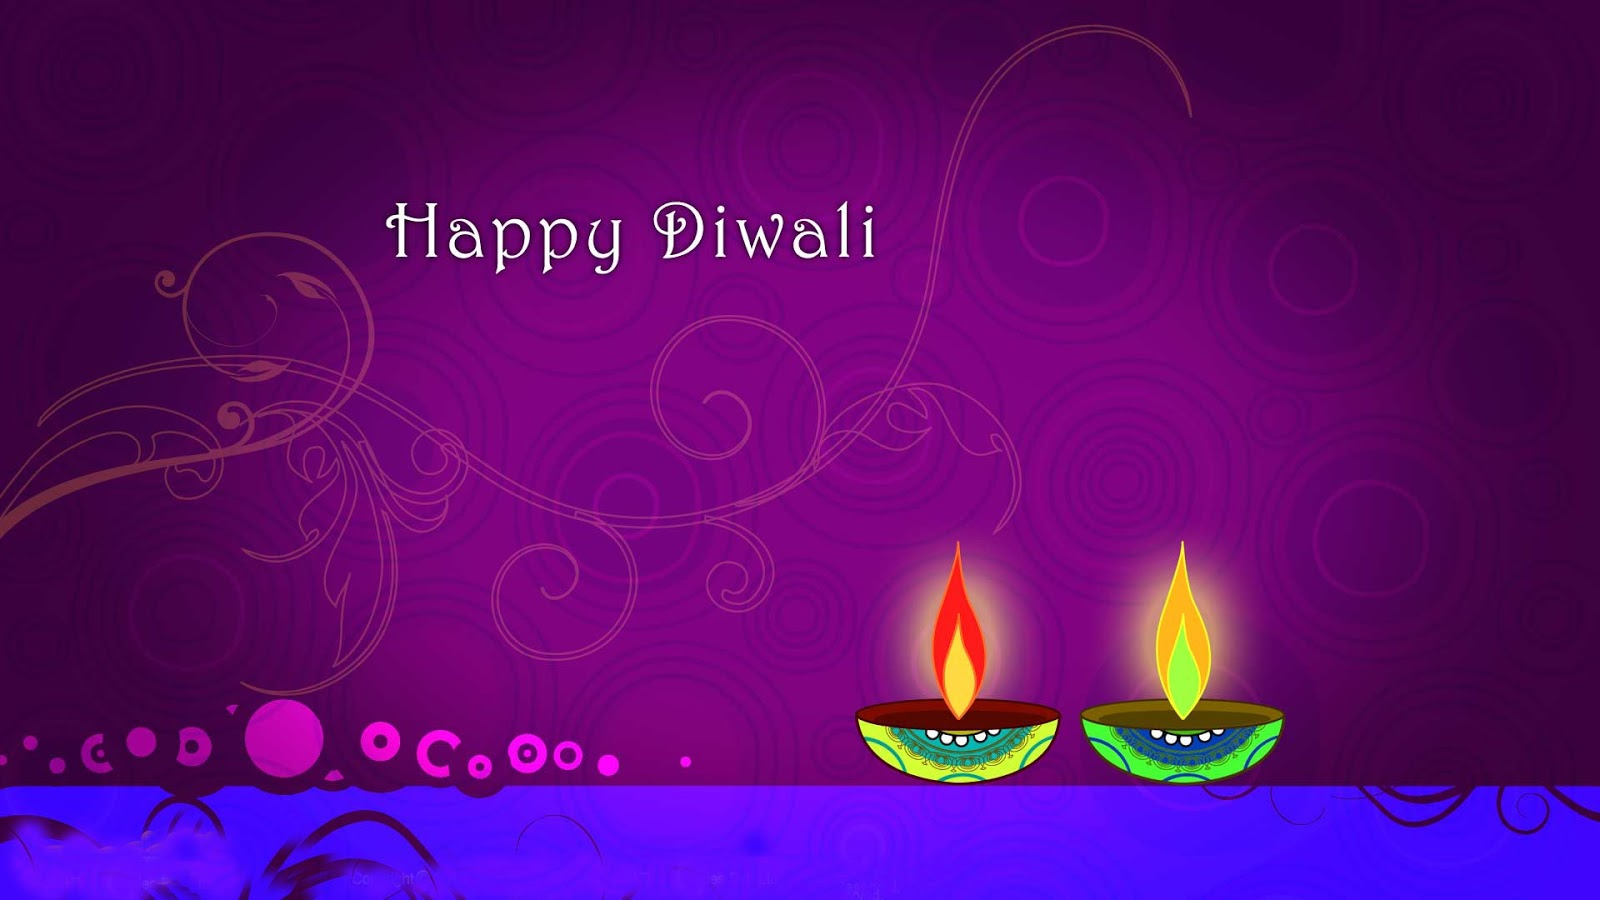 2018 Latest Happy Diwali Images Wallpapers Full Hd Messages